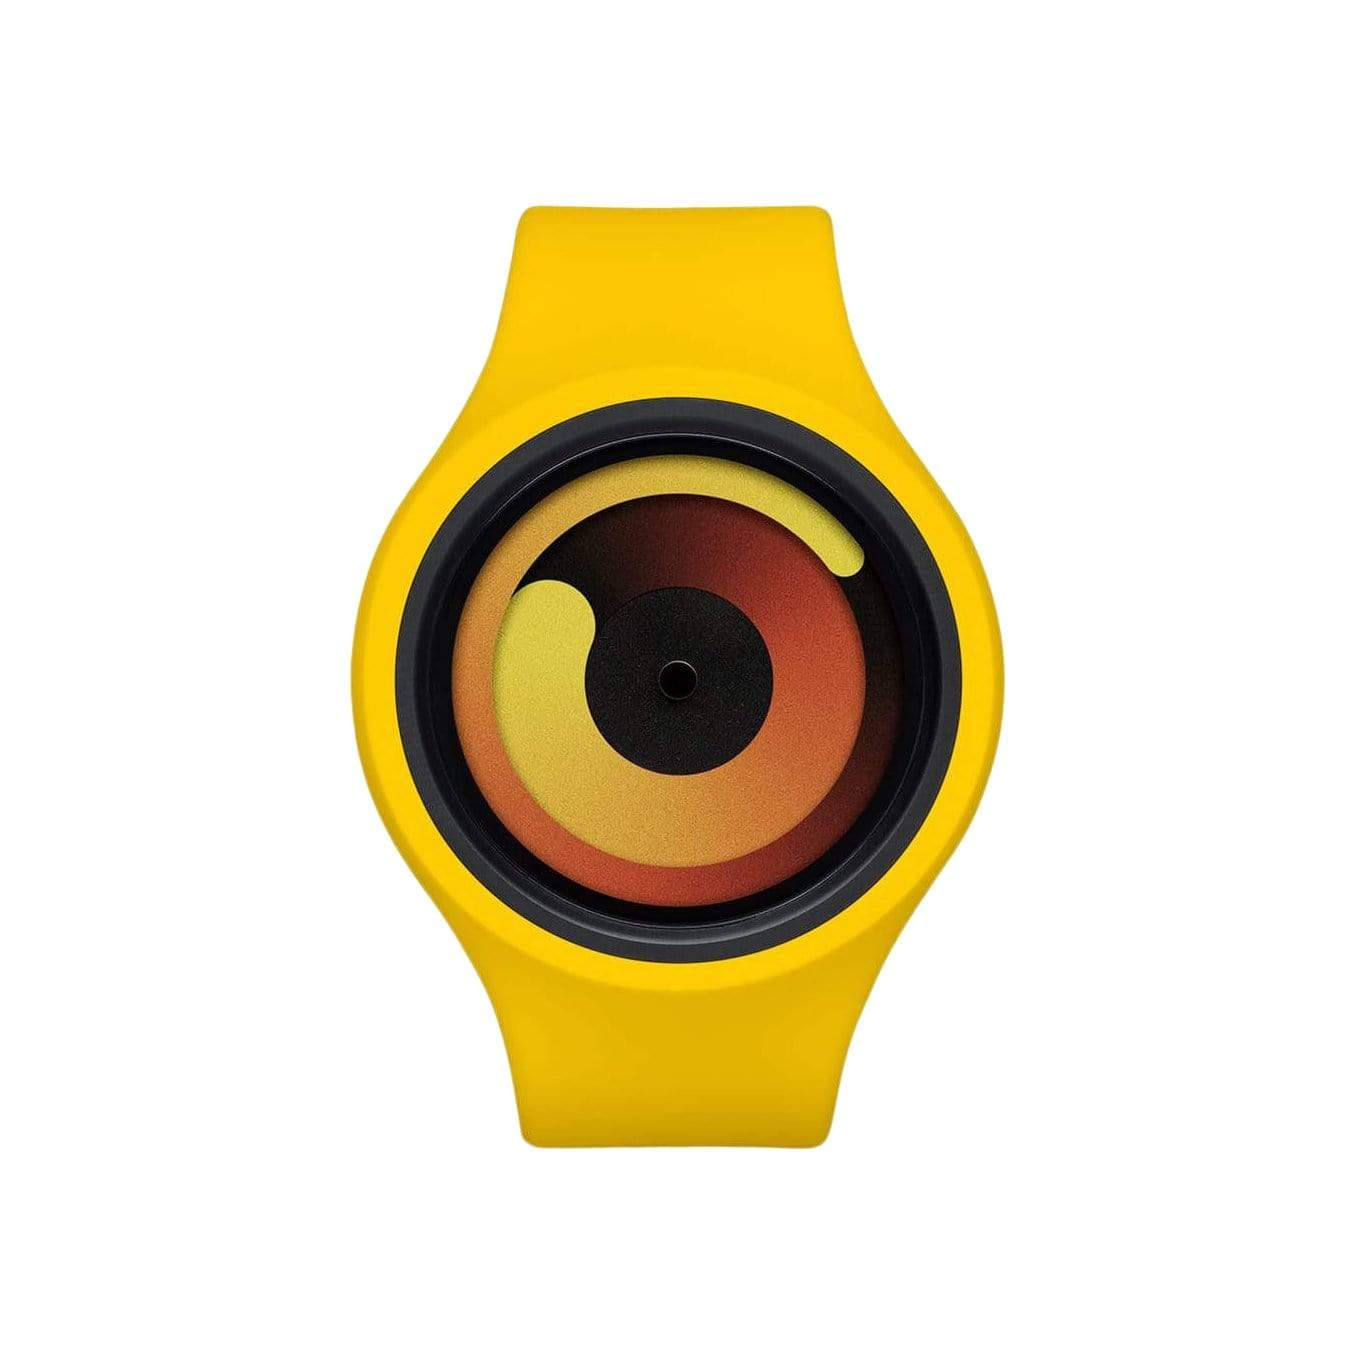 Gravity Plus+ Watch in Banana